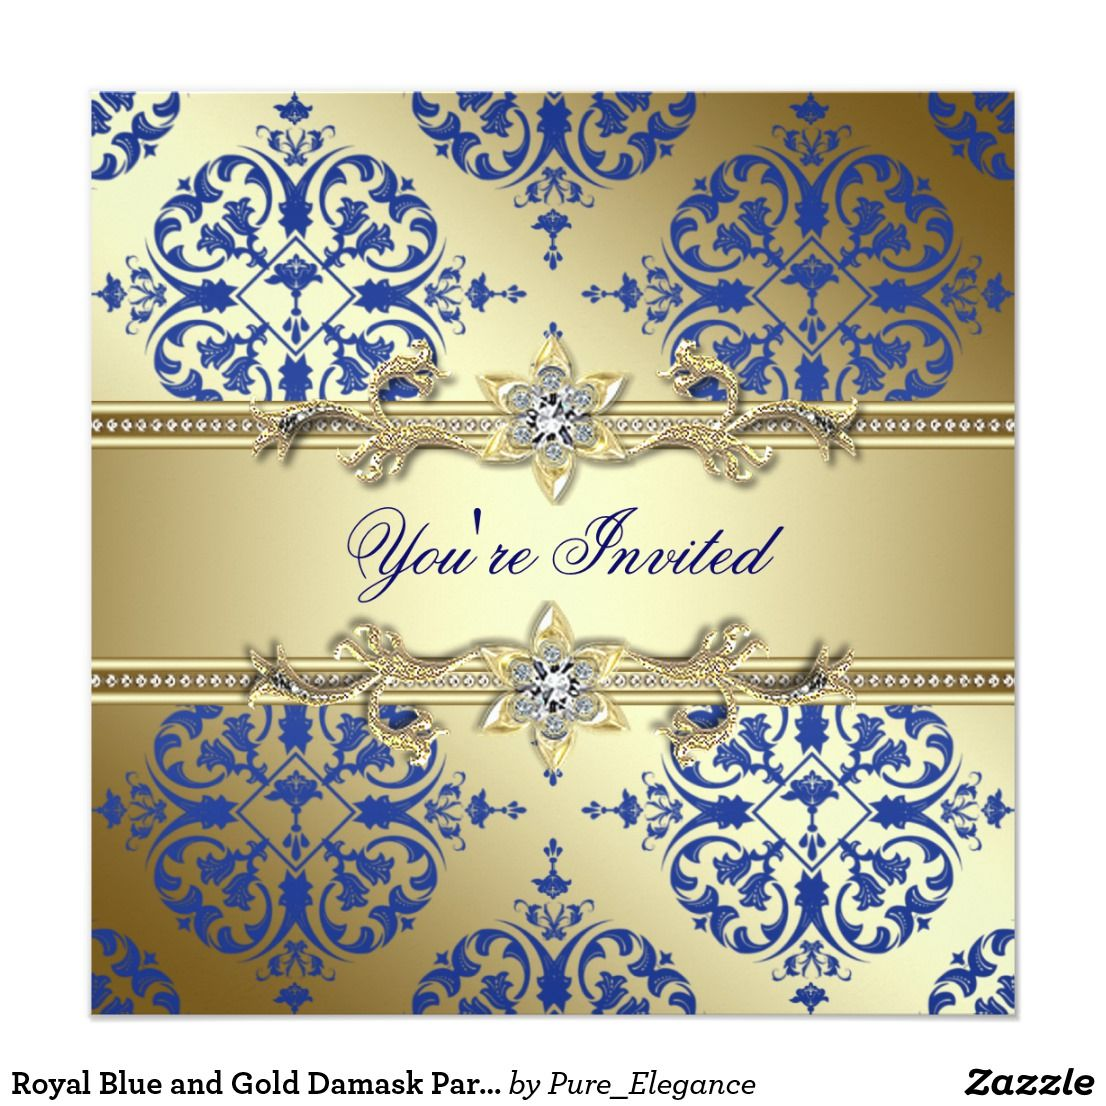 Royal Blue and Gold Damask Party Invitations | Damask party, Party ...